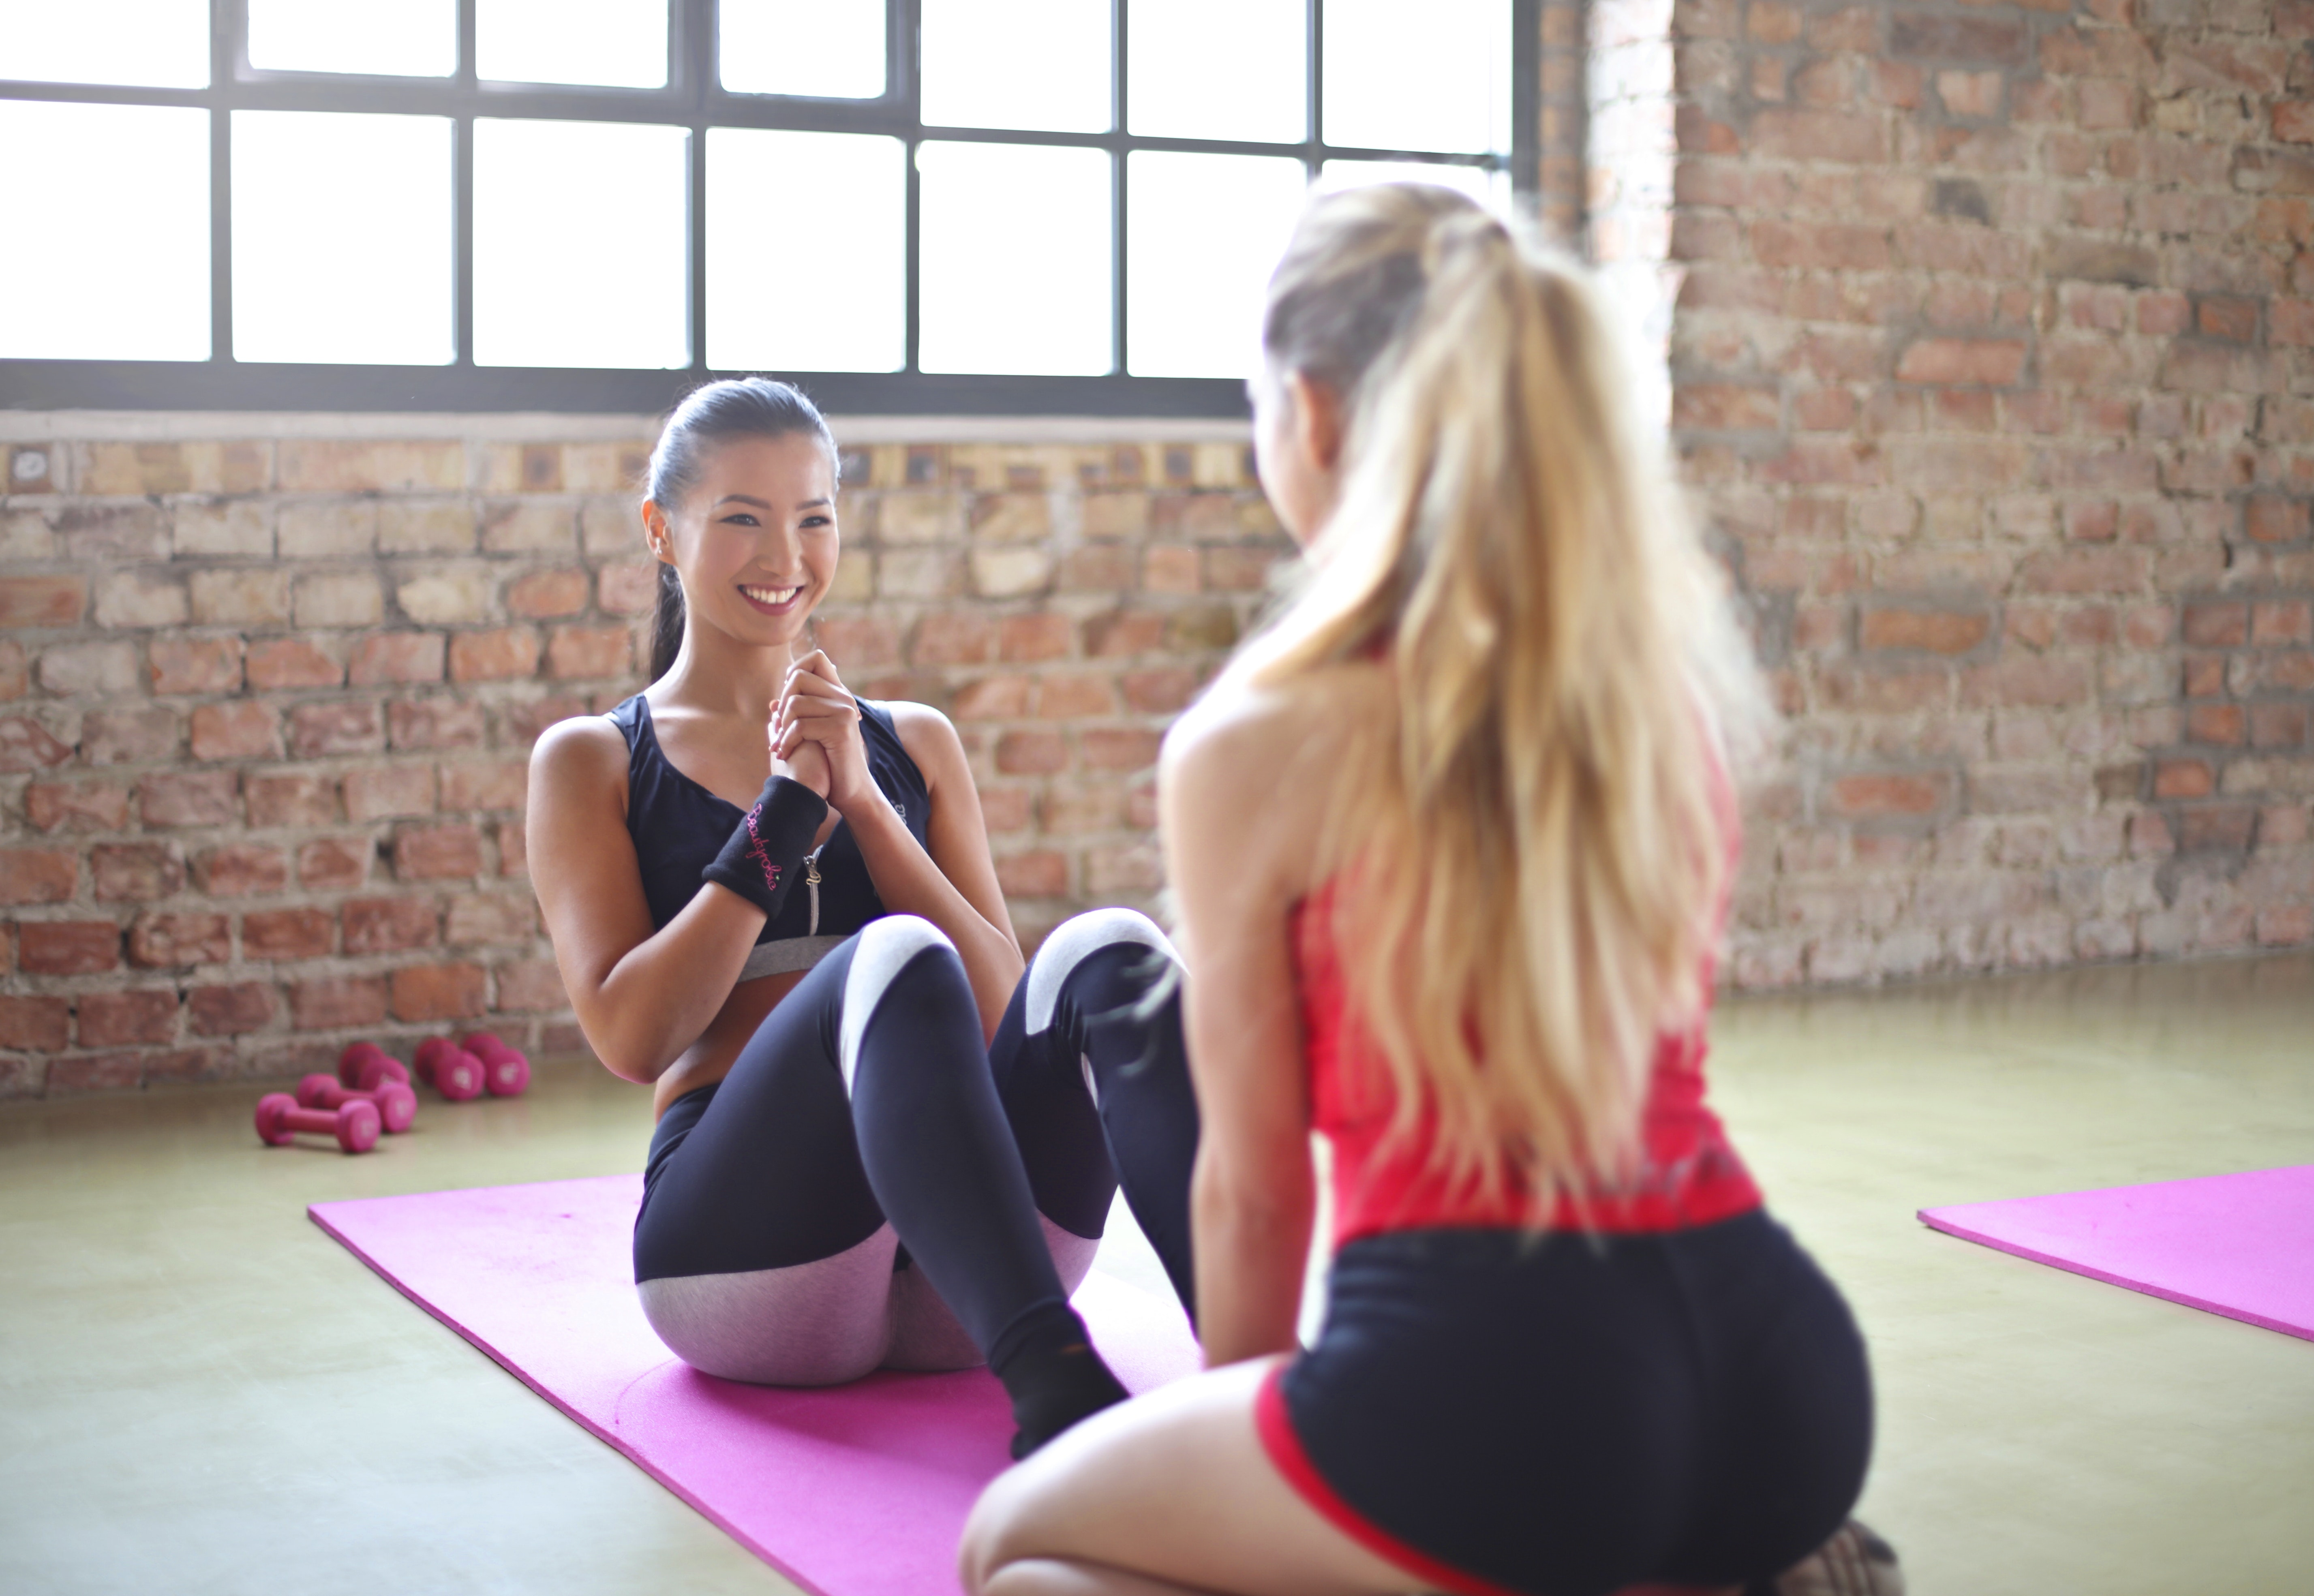 Woman with red top and black shorts on purple yoga mat photo